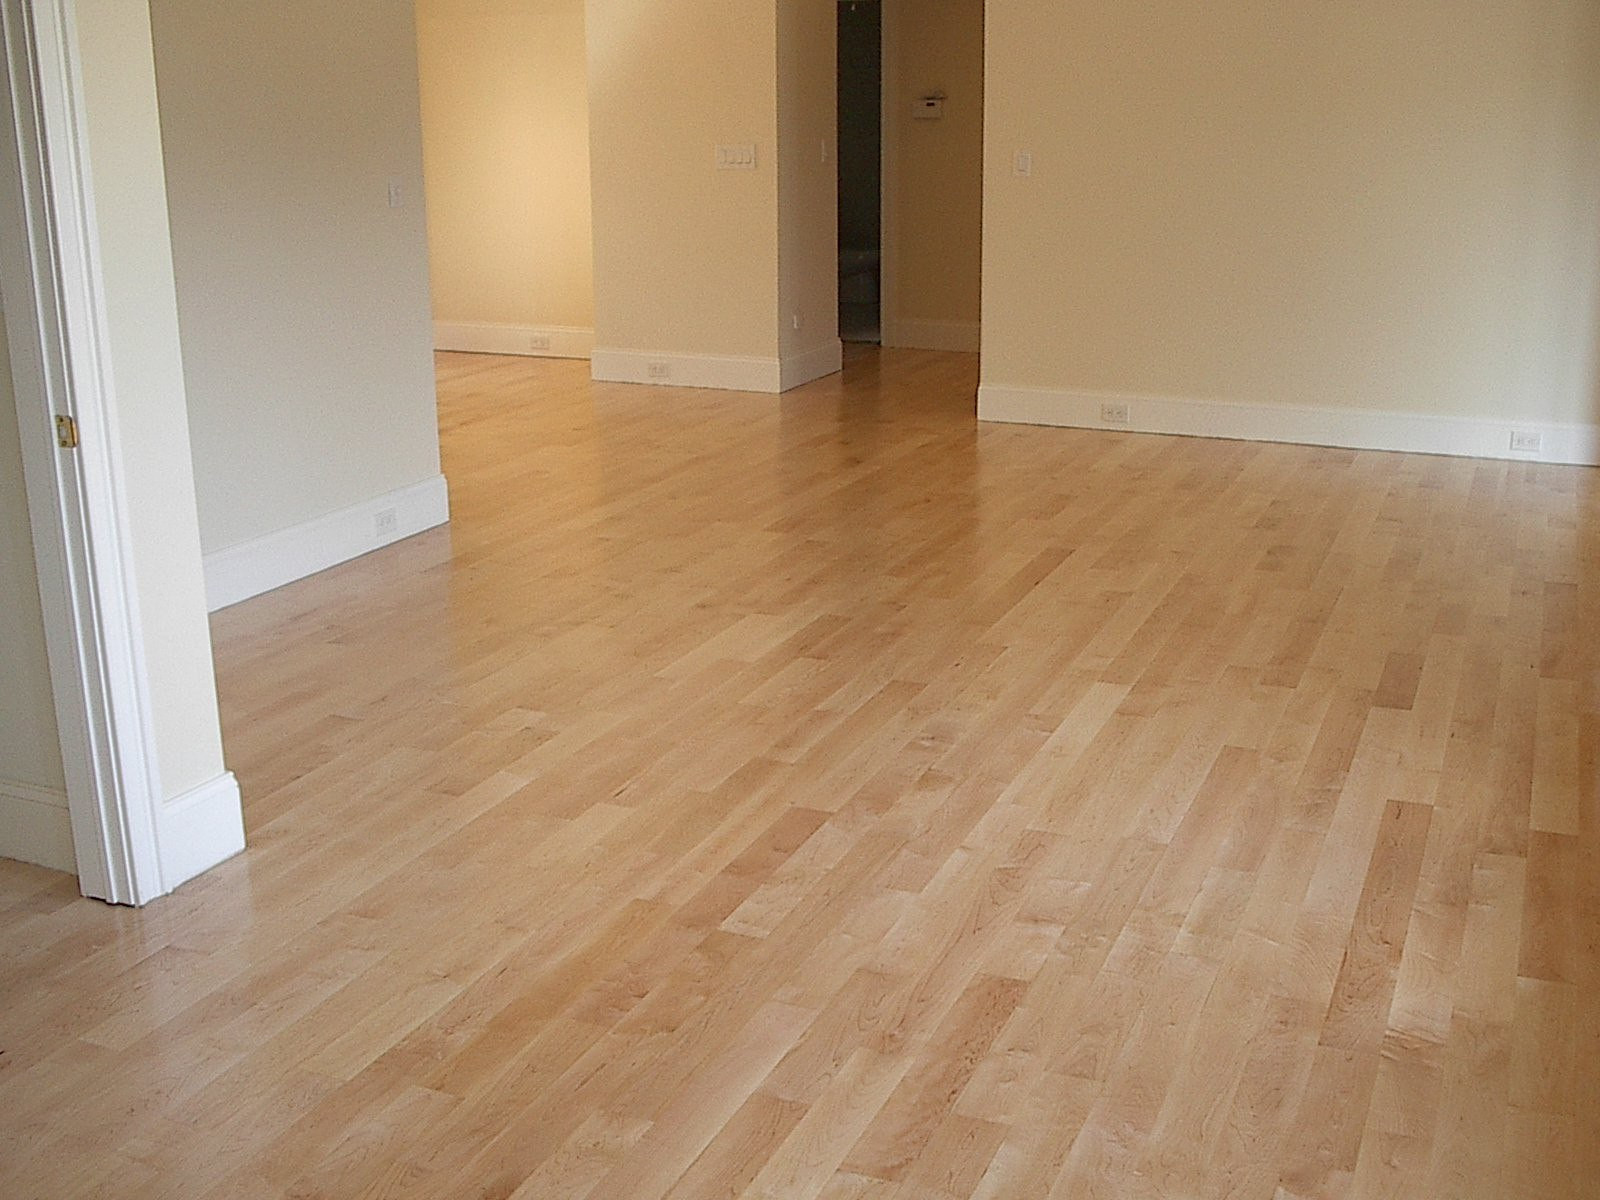 refinishing engineered hardwood floors cost of cost to refinish hardwood floors floor plan ideas within cost hardwood flooring installed calculator awesome cost to get hardwood floors installed how much does